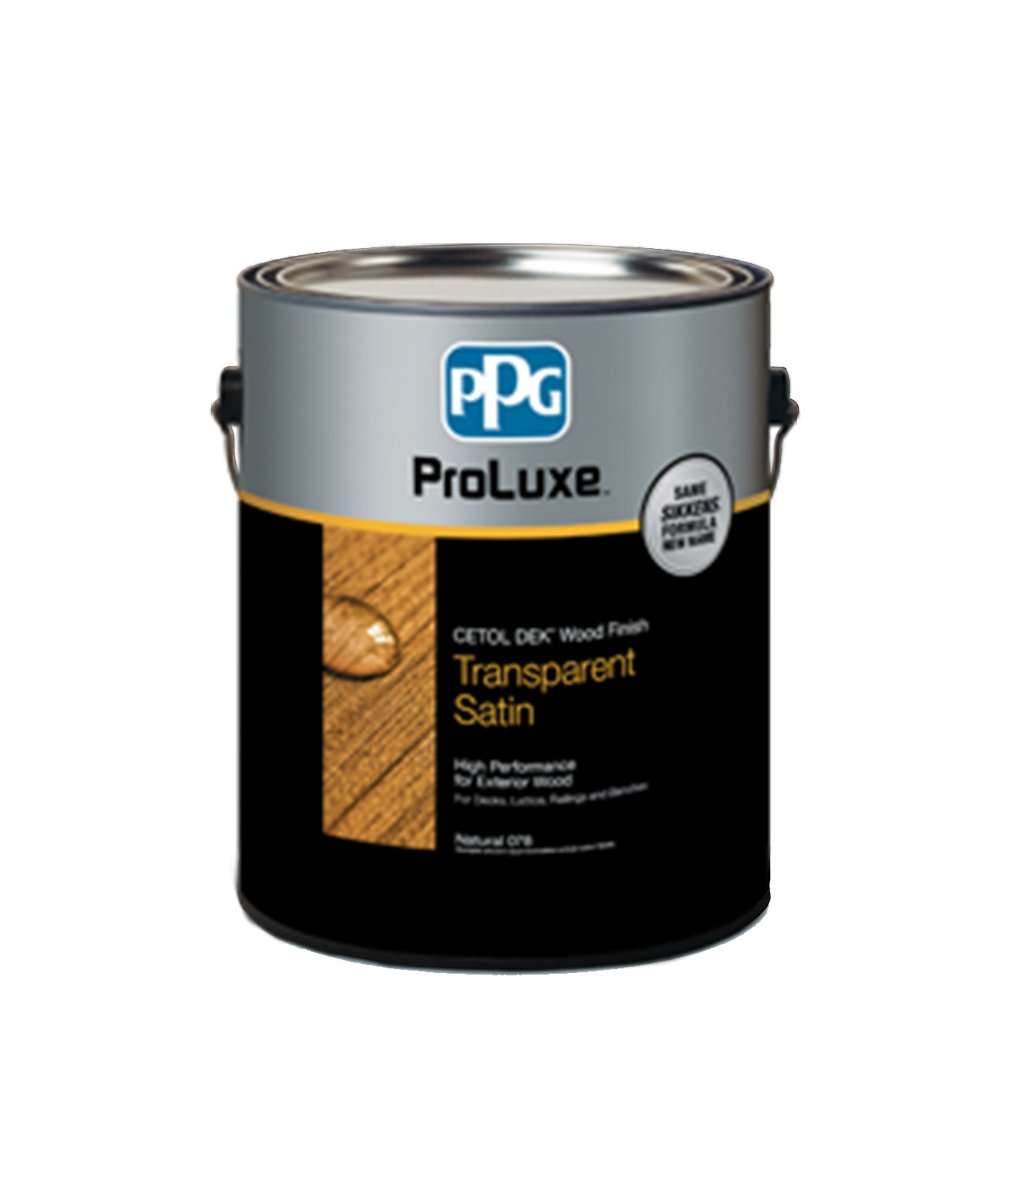 Proluxe dek wood finish available at Clement's Paint in Austin, TX.